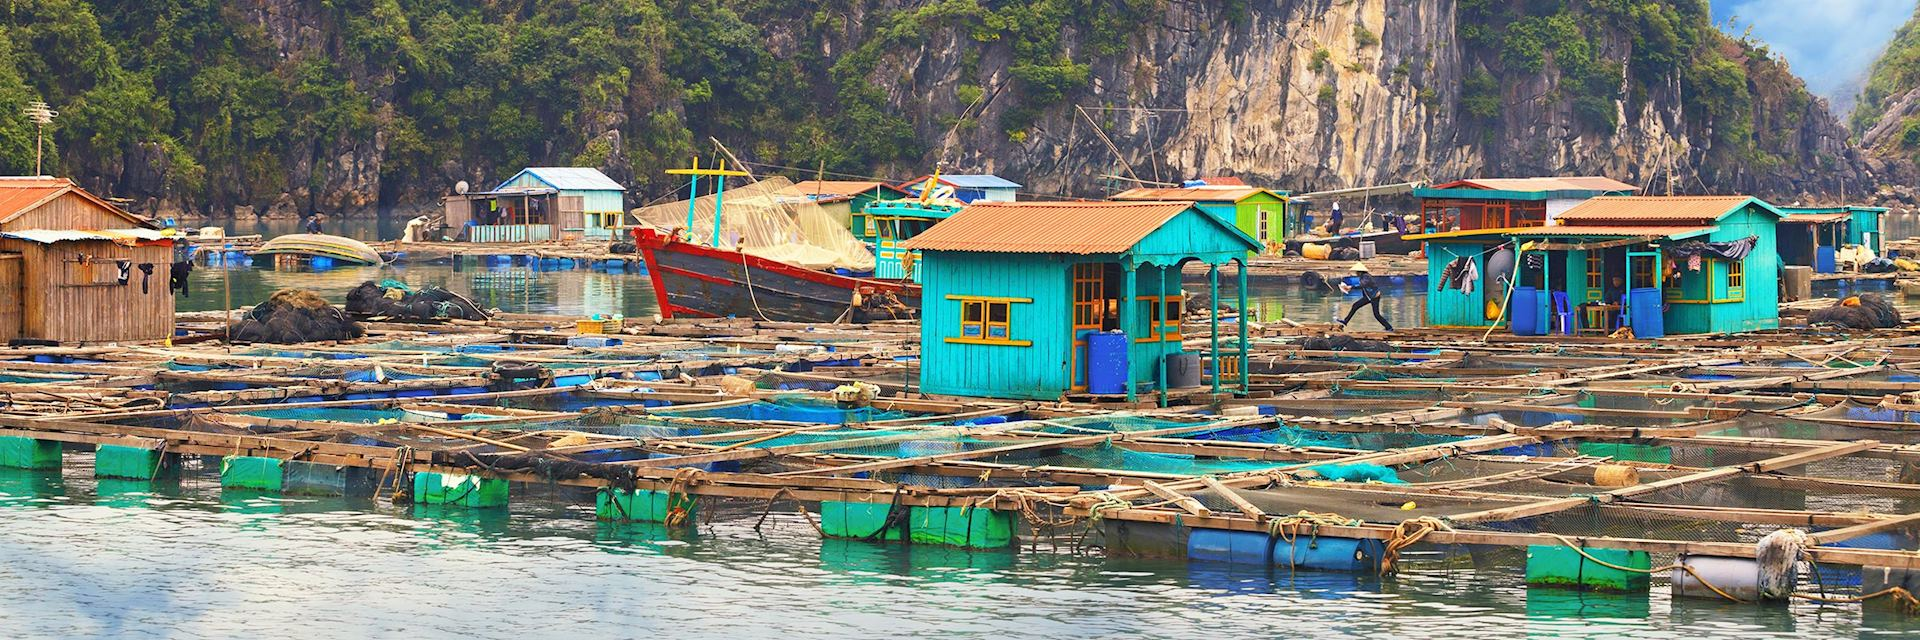 Floating village, Halong Bay